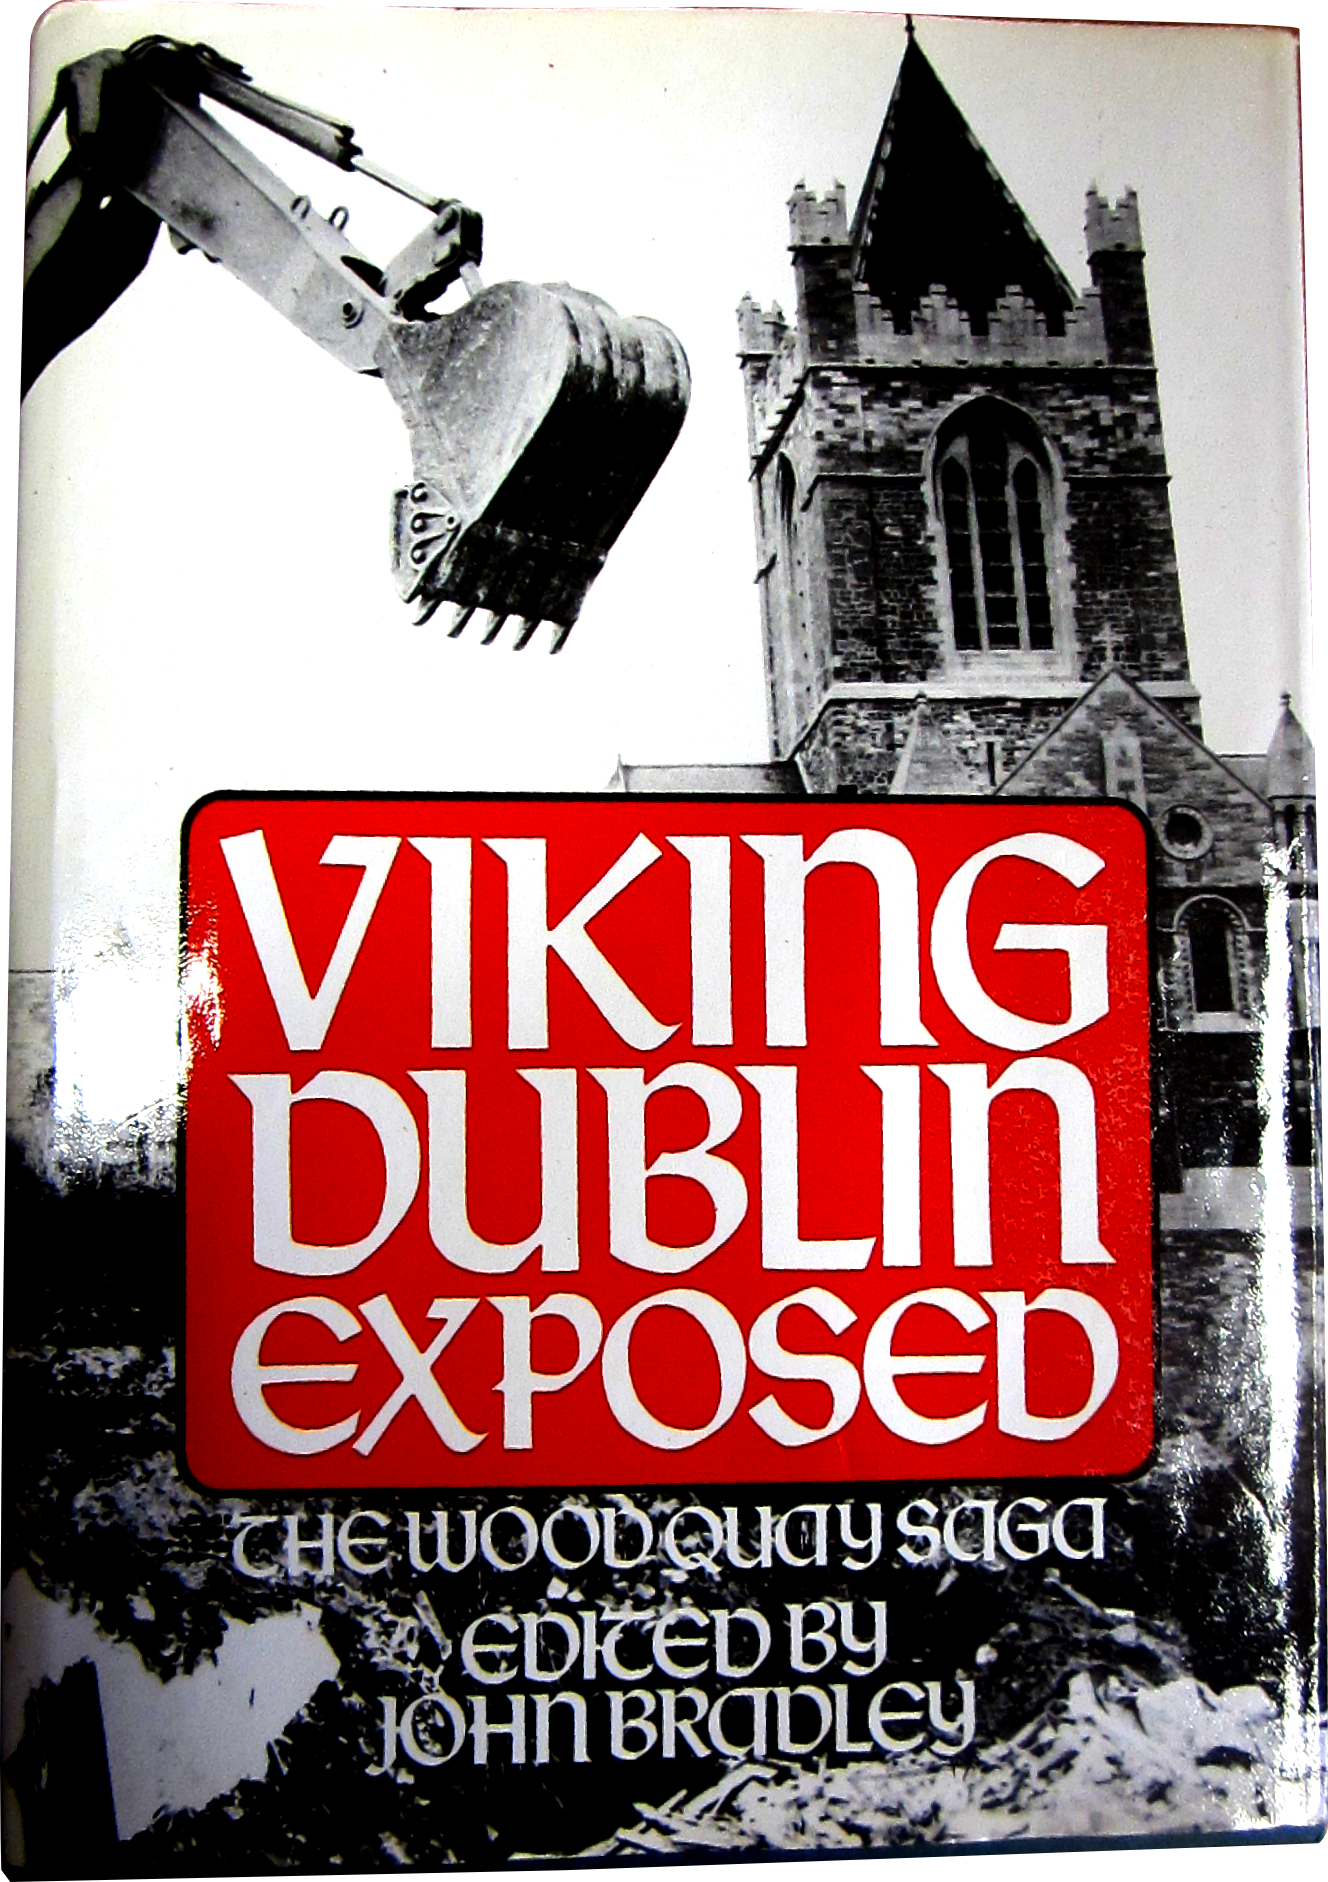 Viking Dublin Exposed: The Wood Quay Saga (1989)